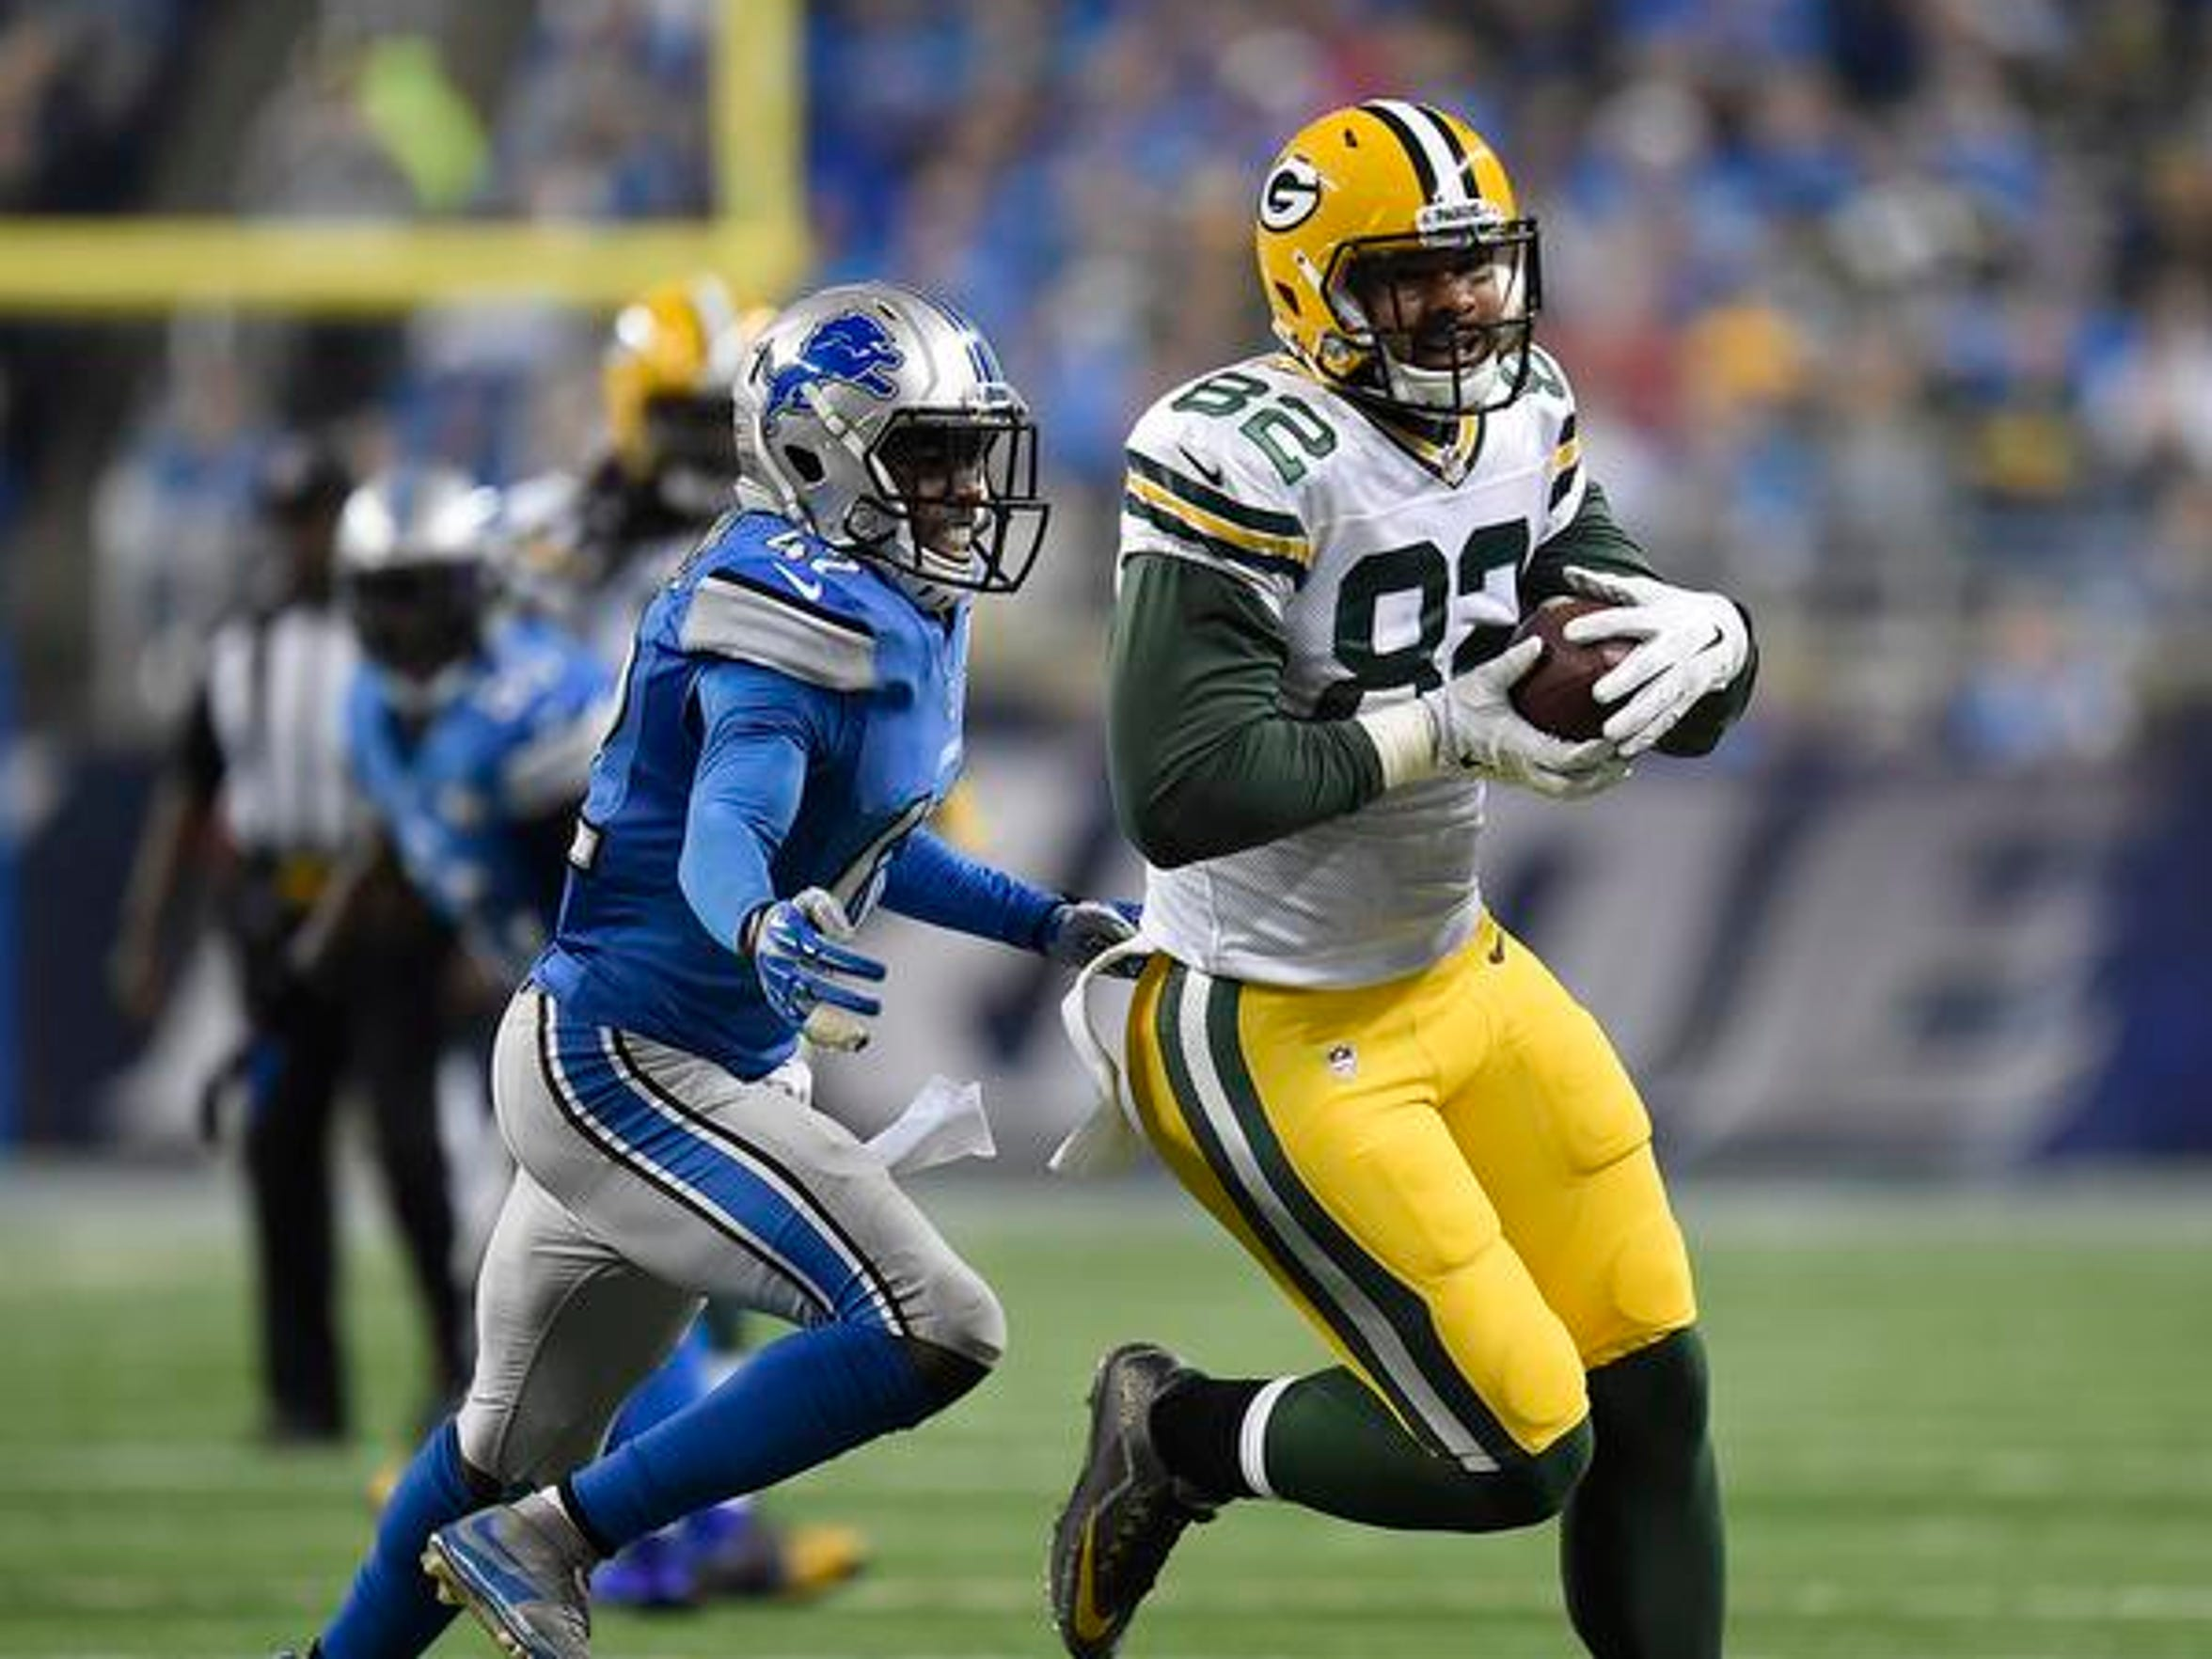 Green Bay Packers tight end Richard Rodgers runs with the ball after making a catch against the Detroit Lions at Ford Field.